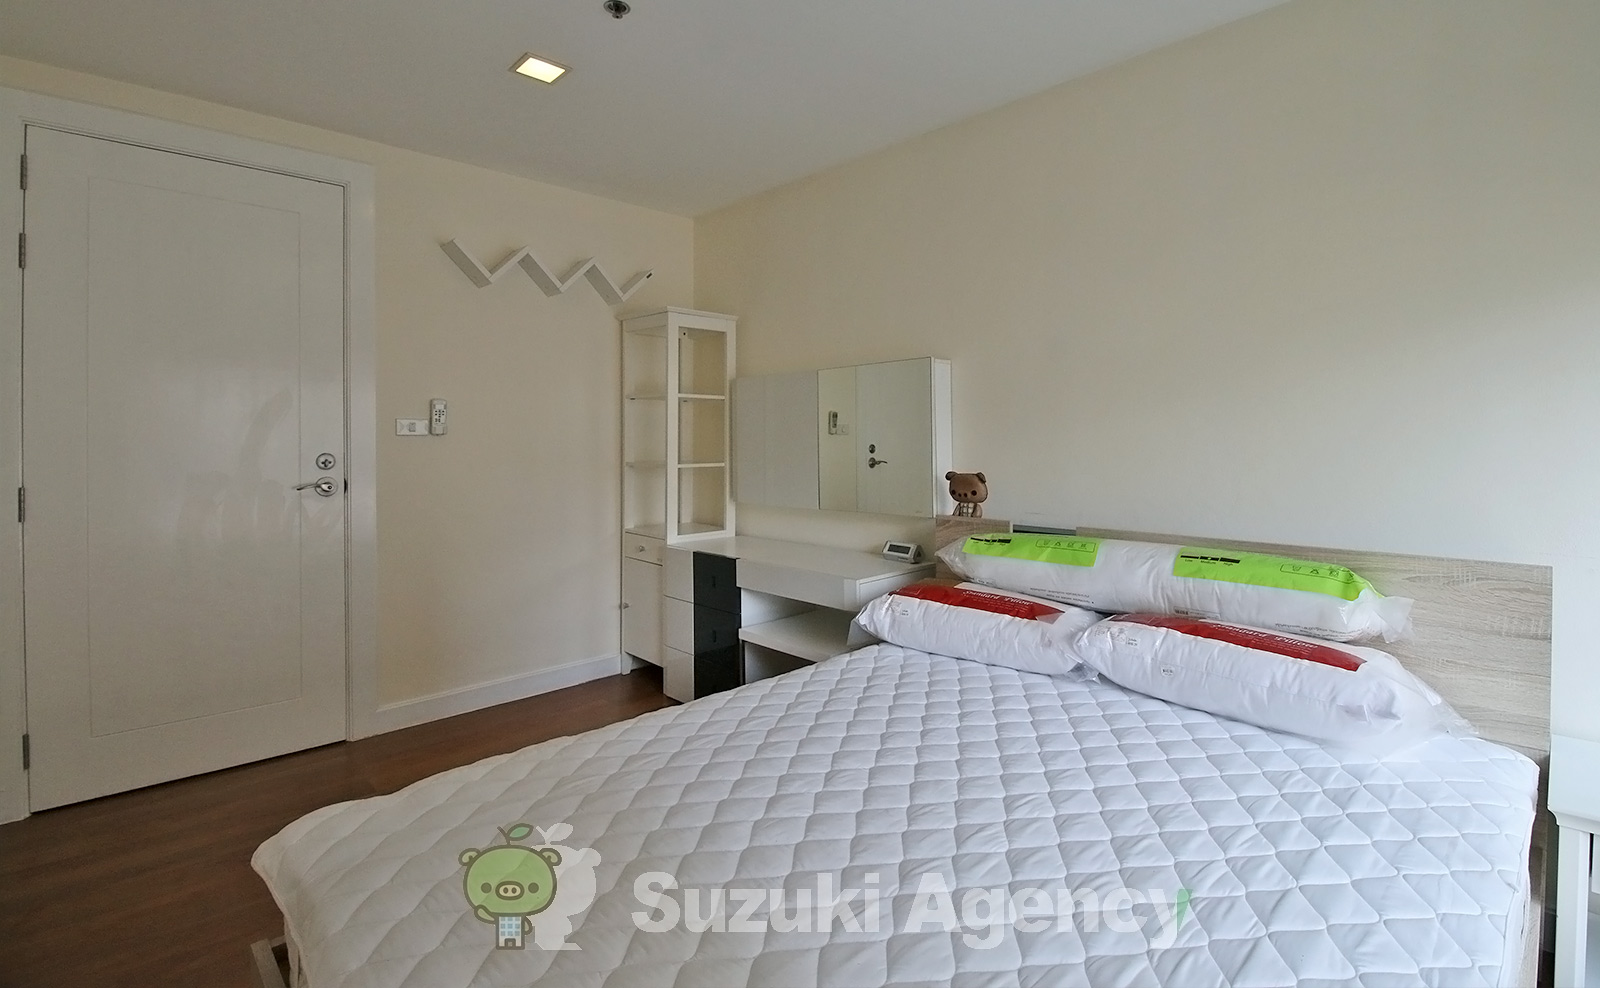 Prime Mansion Sukhumvit 31:2Bed Room Photos No.10